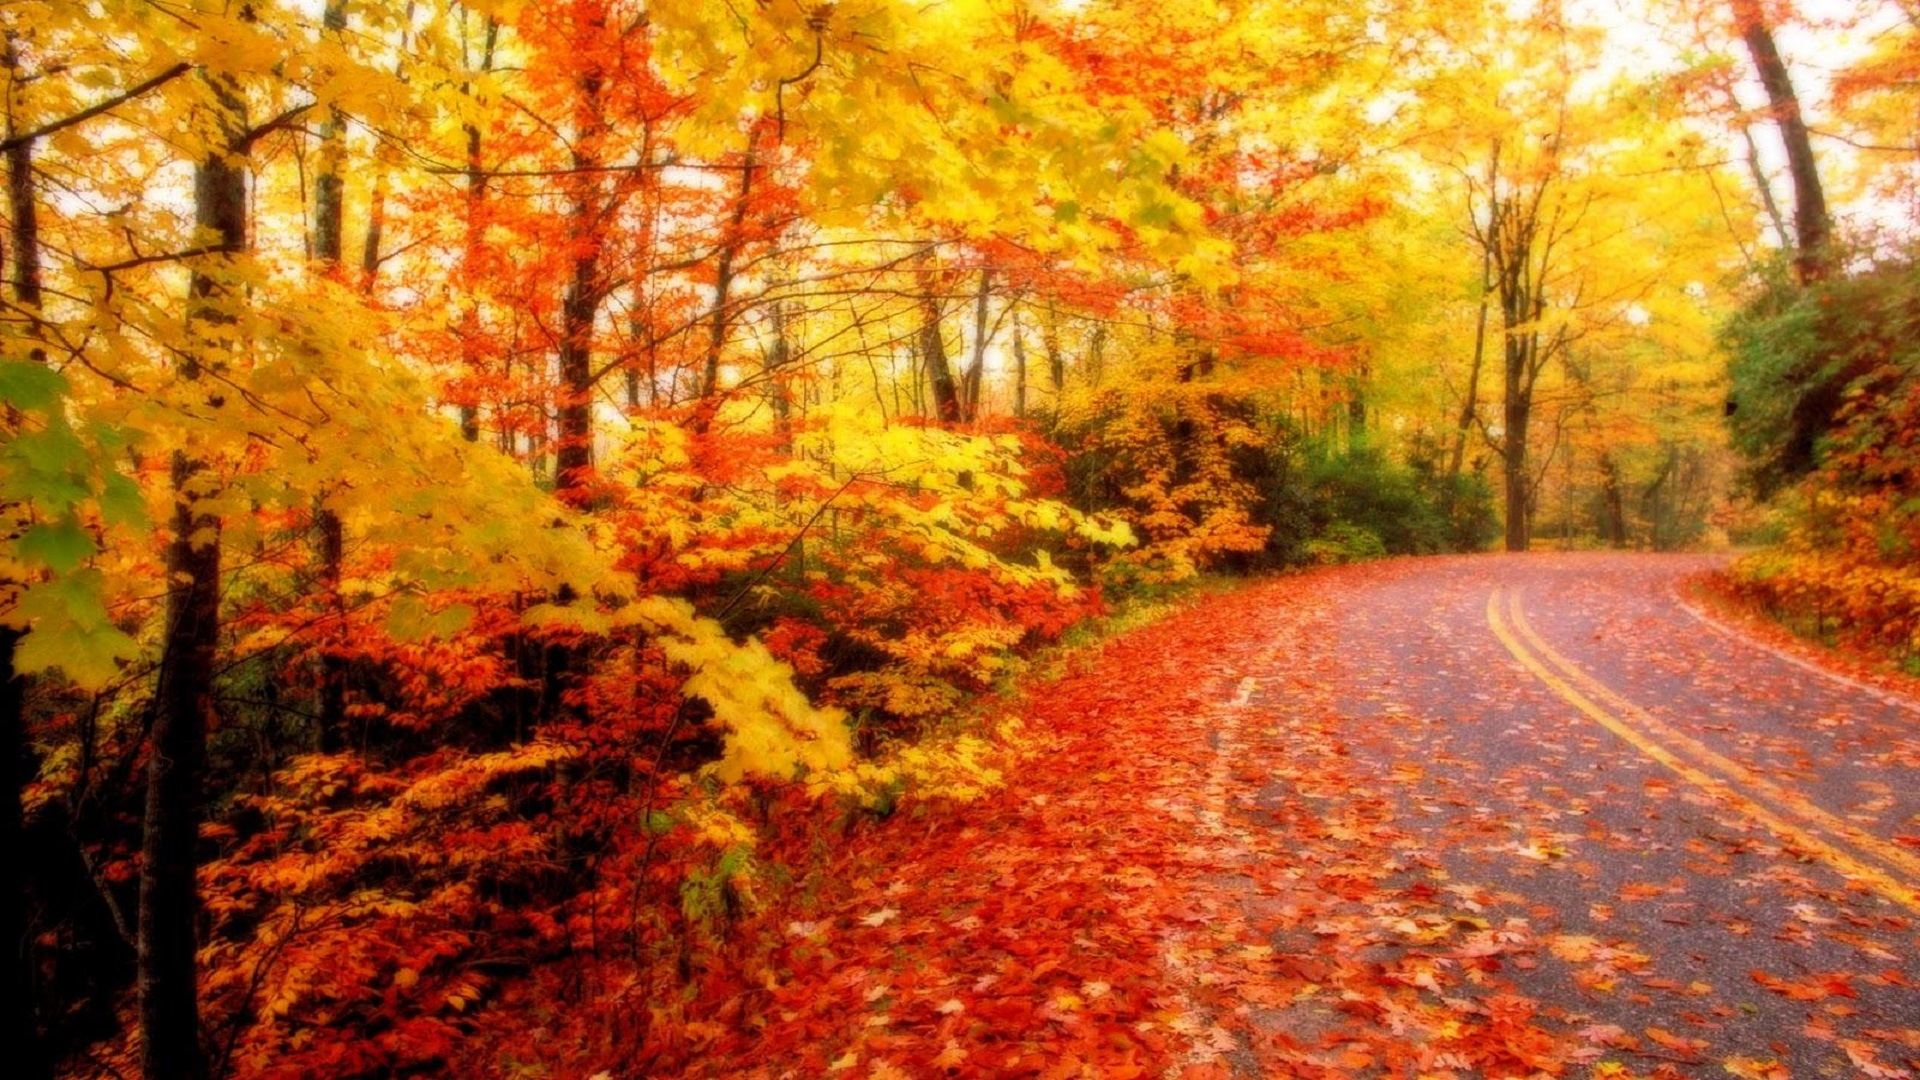 Autumn Season Pictures Wallpaper